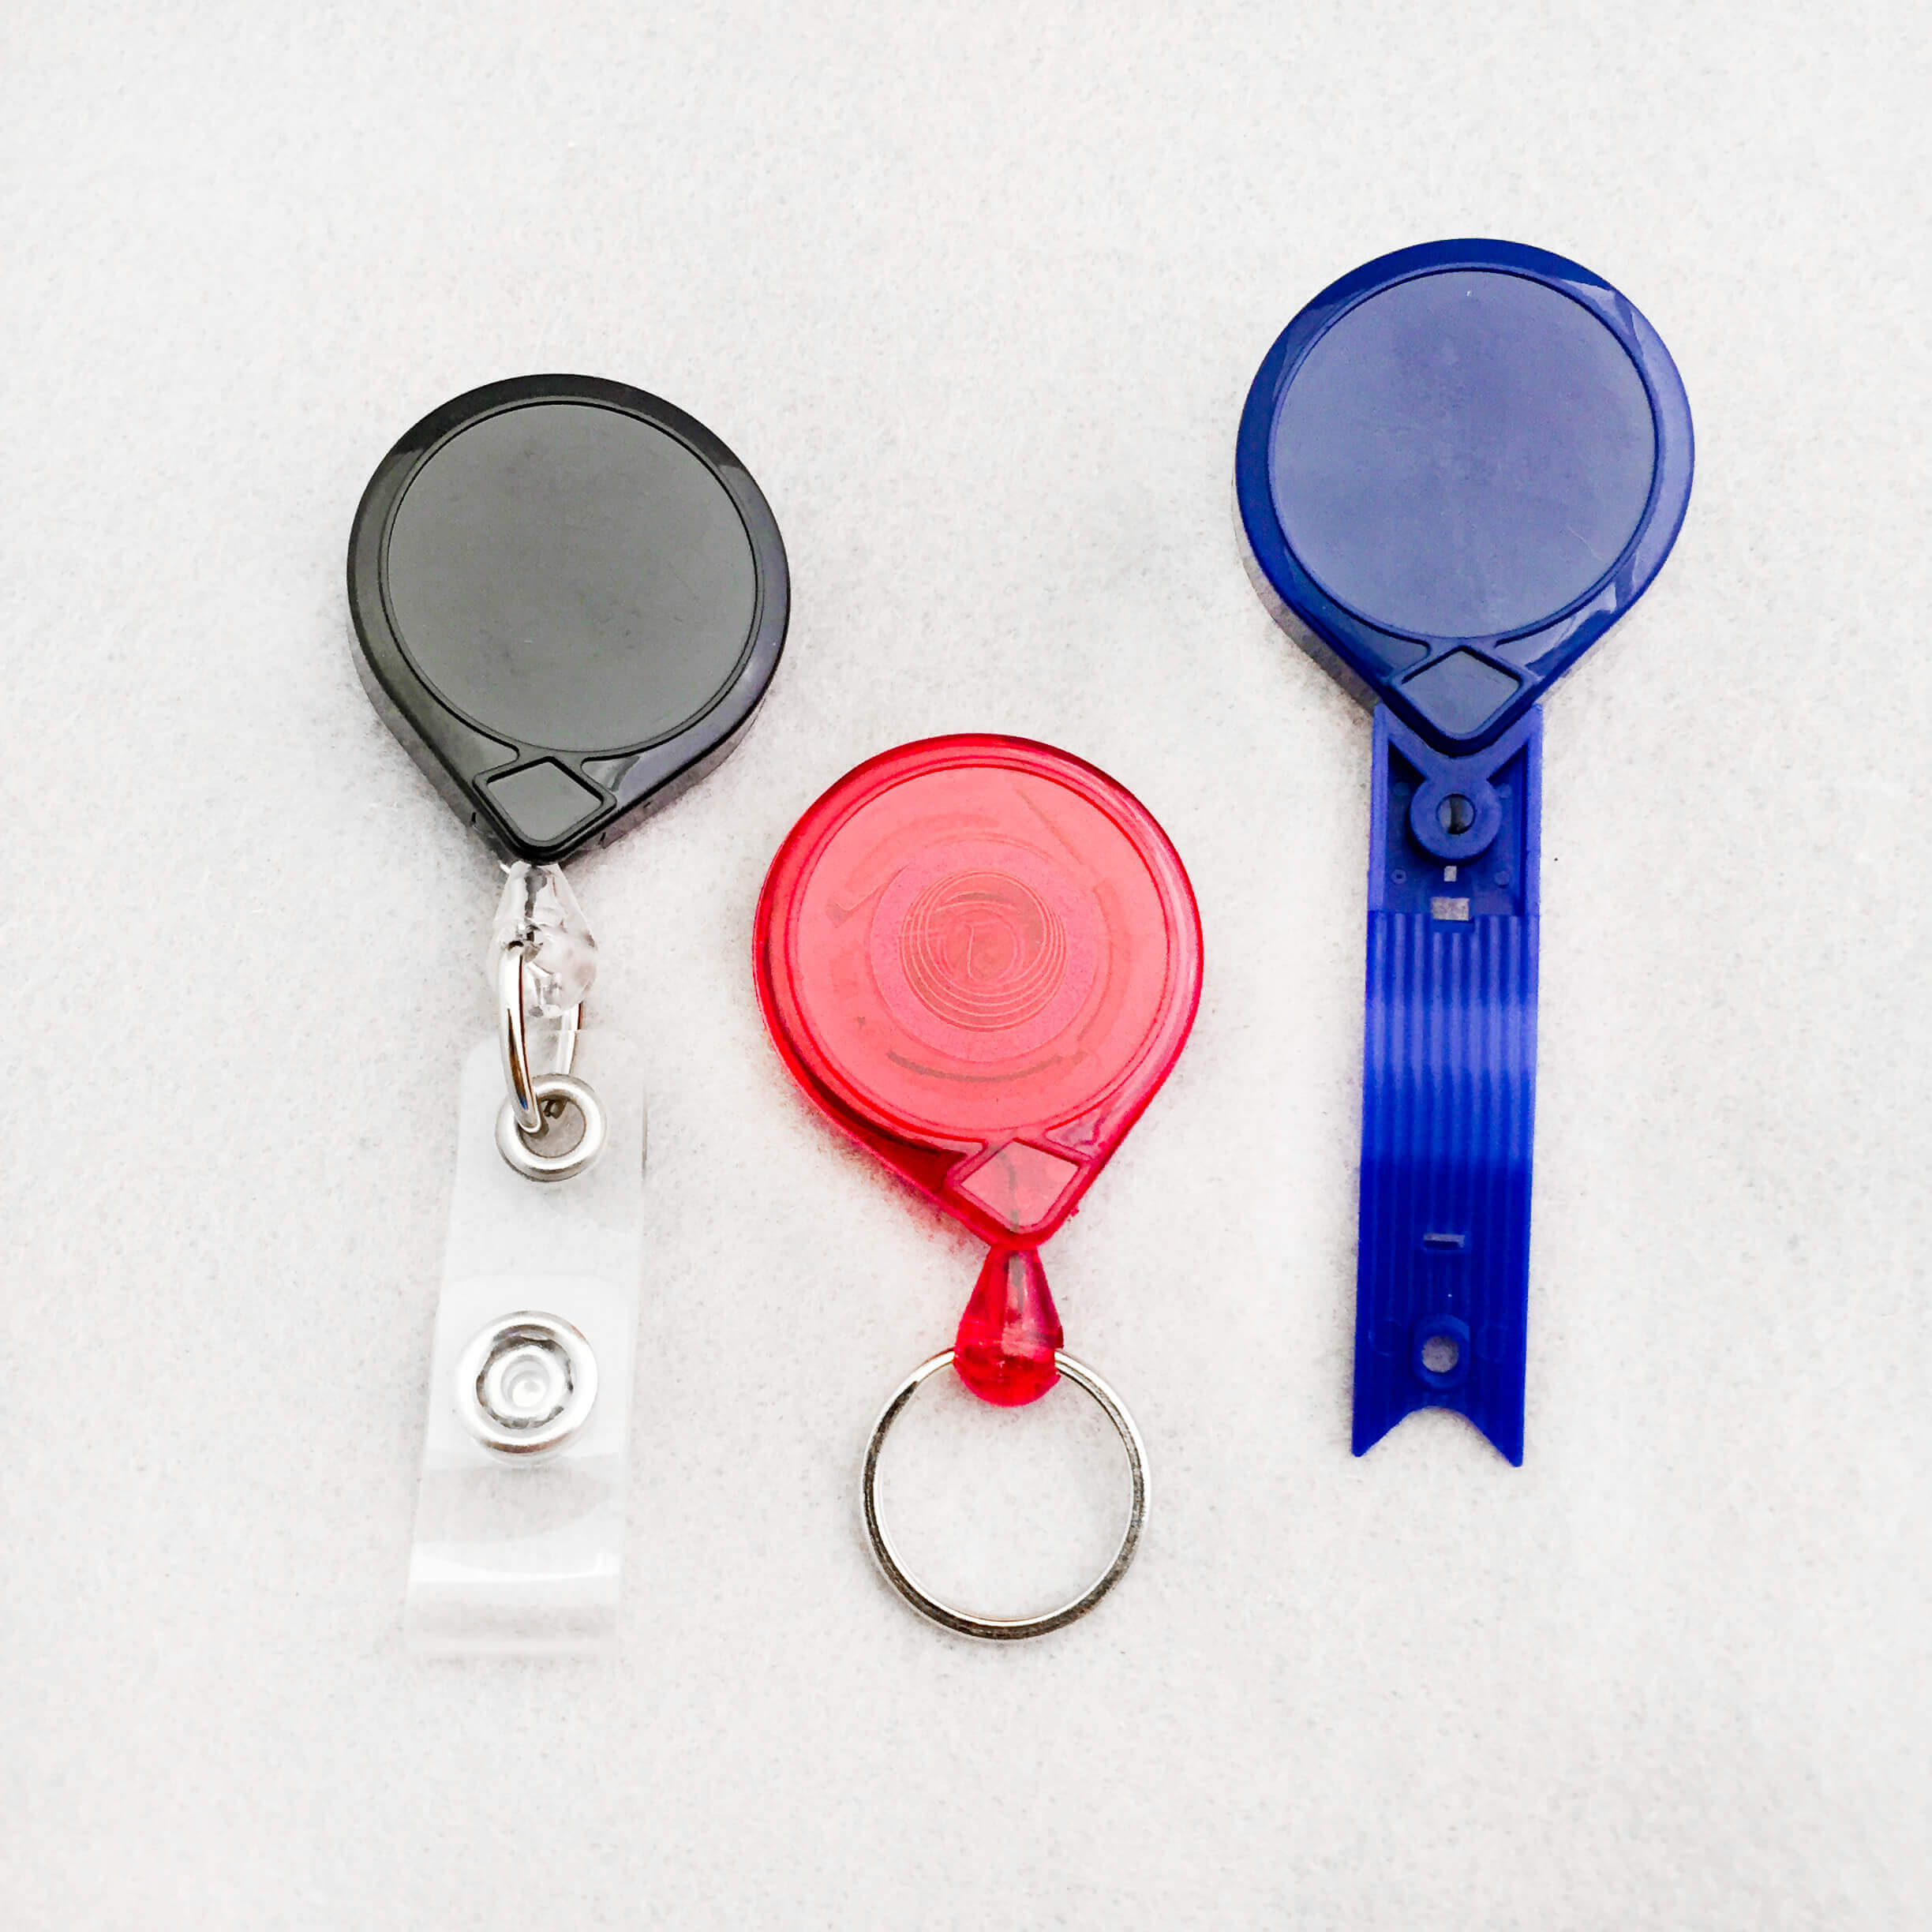 Mini-Bak Badge Reels, Manufactured by Key-Bak in U.S.A.